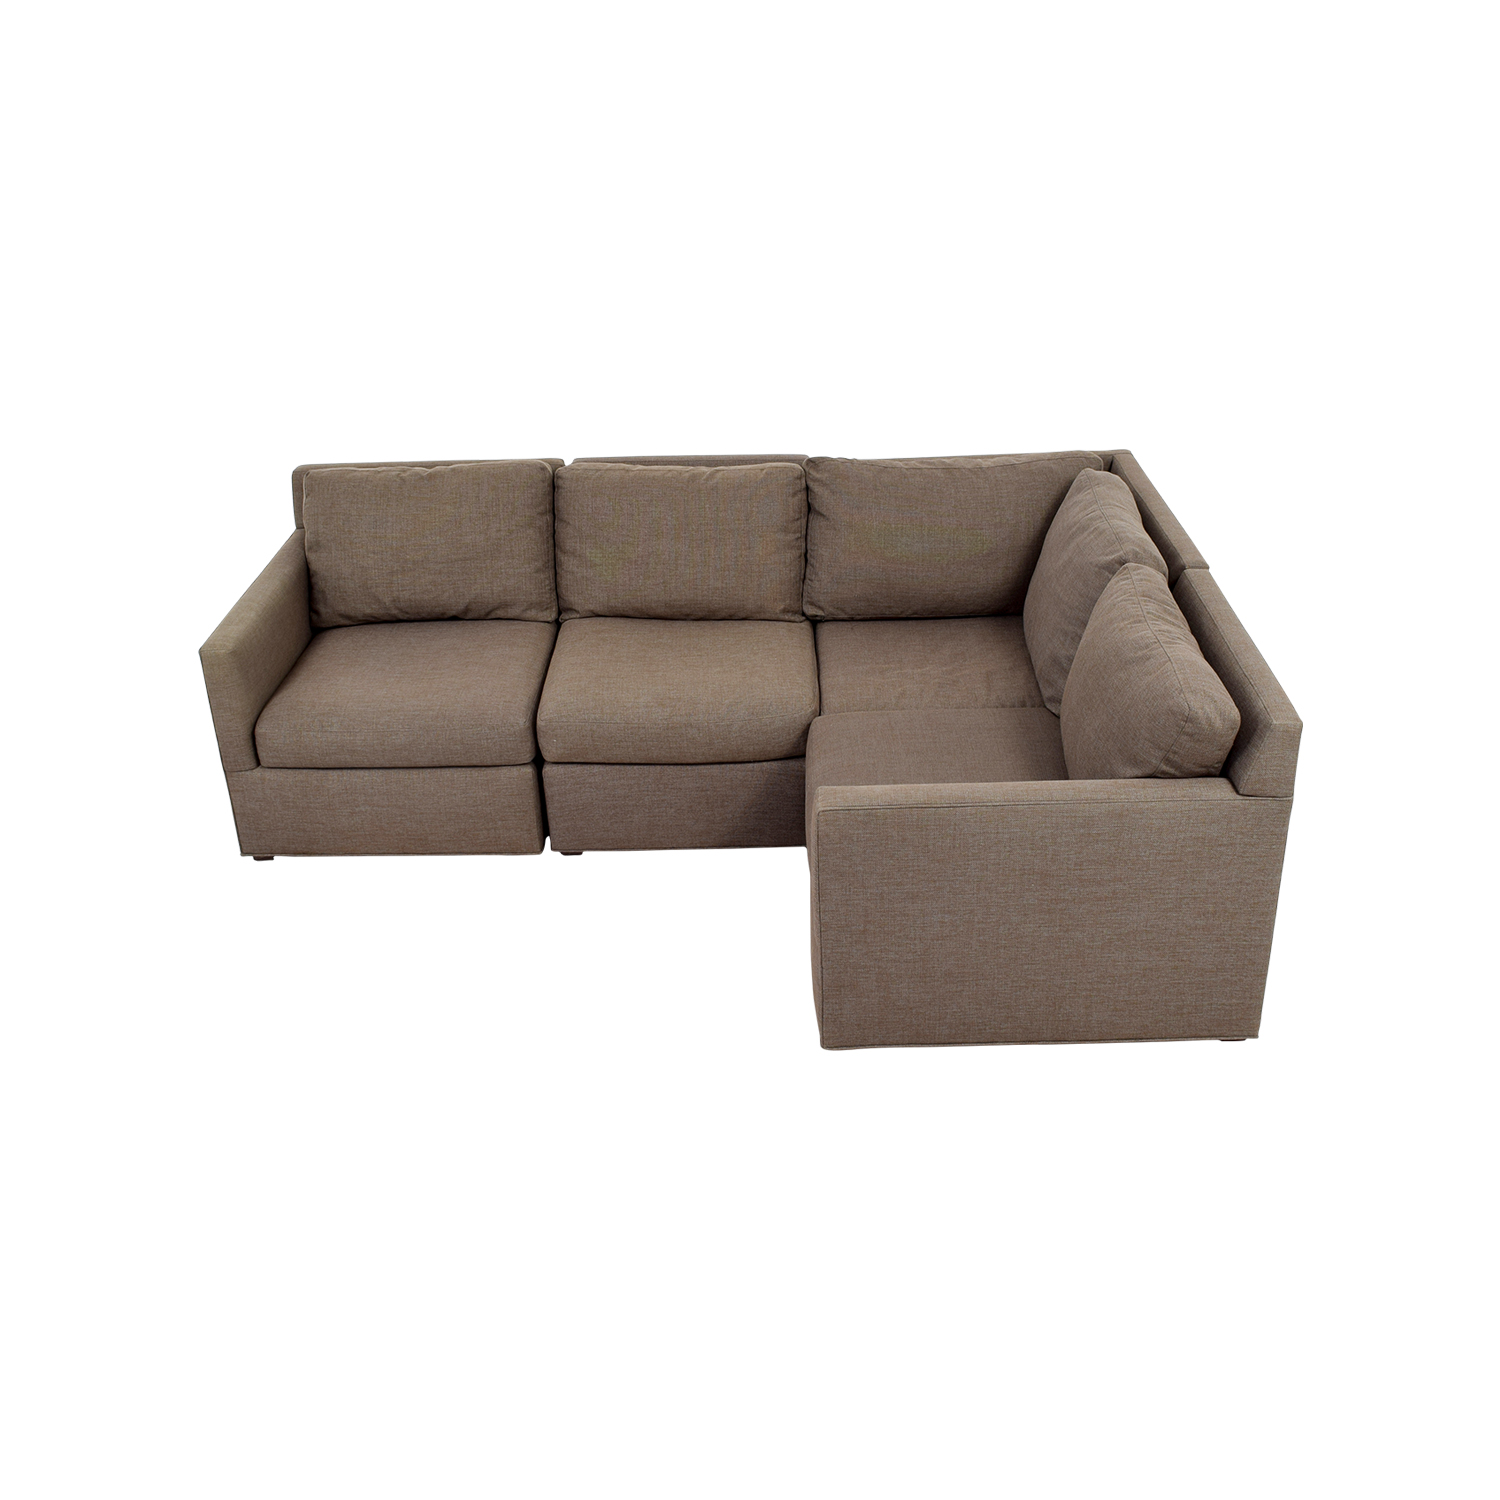 crate and barrel davis sofa leather light pink sectional sectionals used for sale